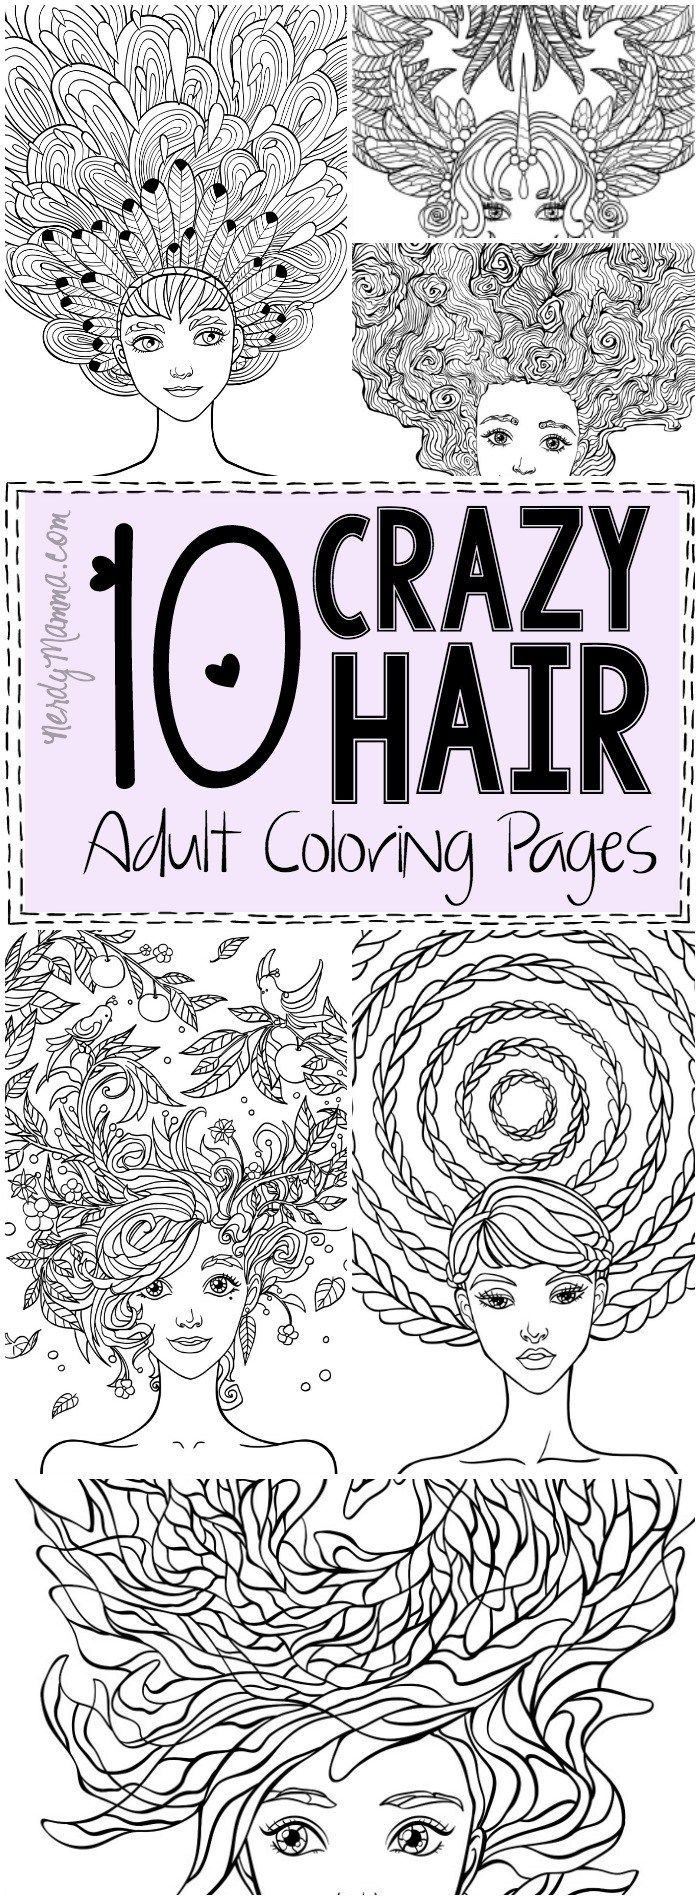 606 best colouring images on pinterest coloring books draw and